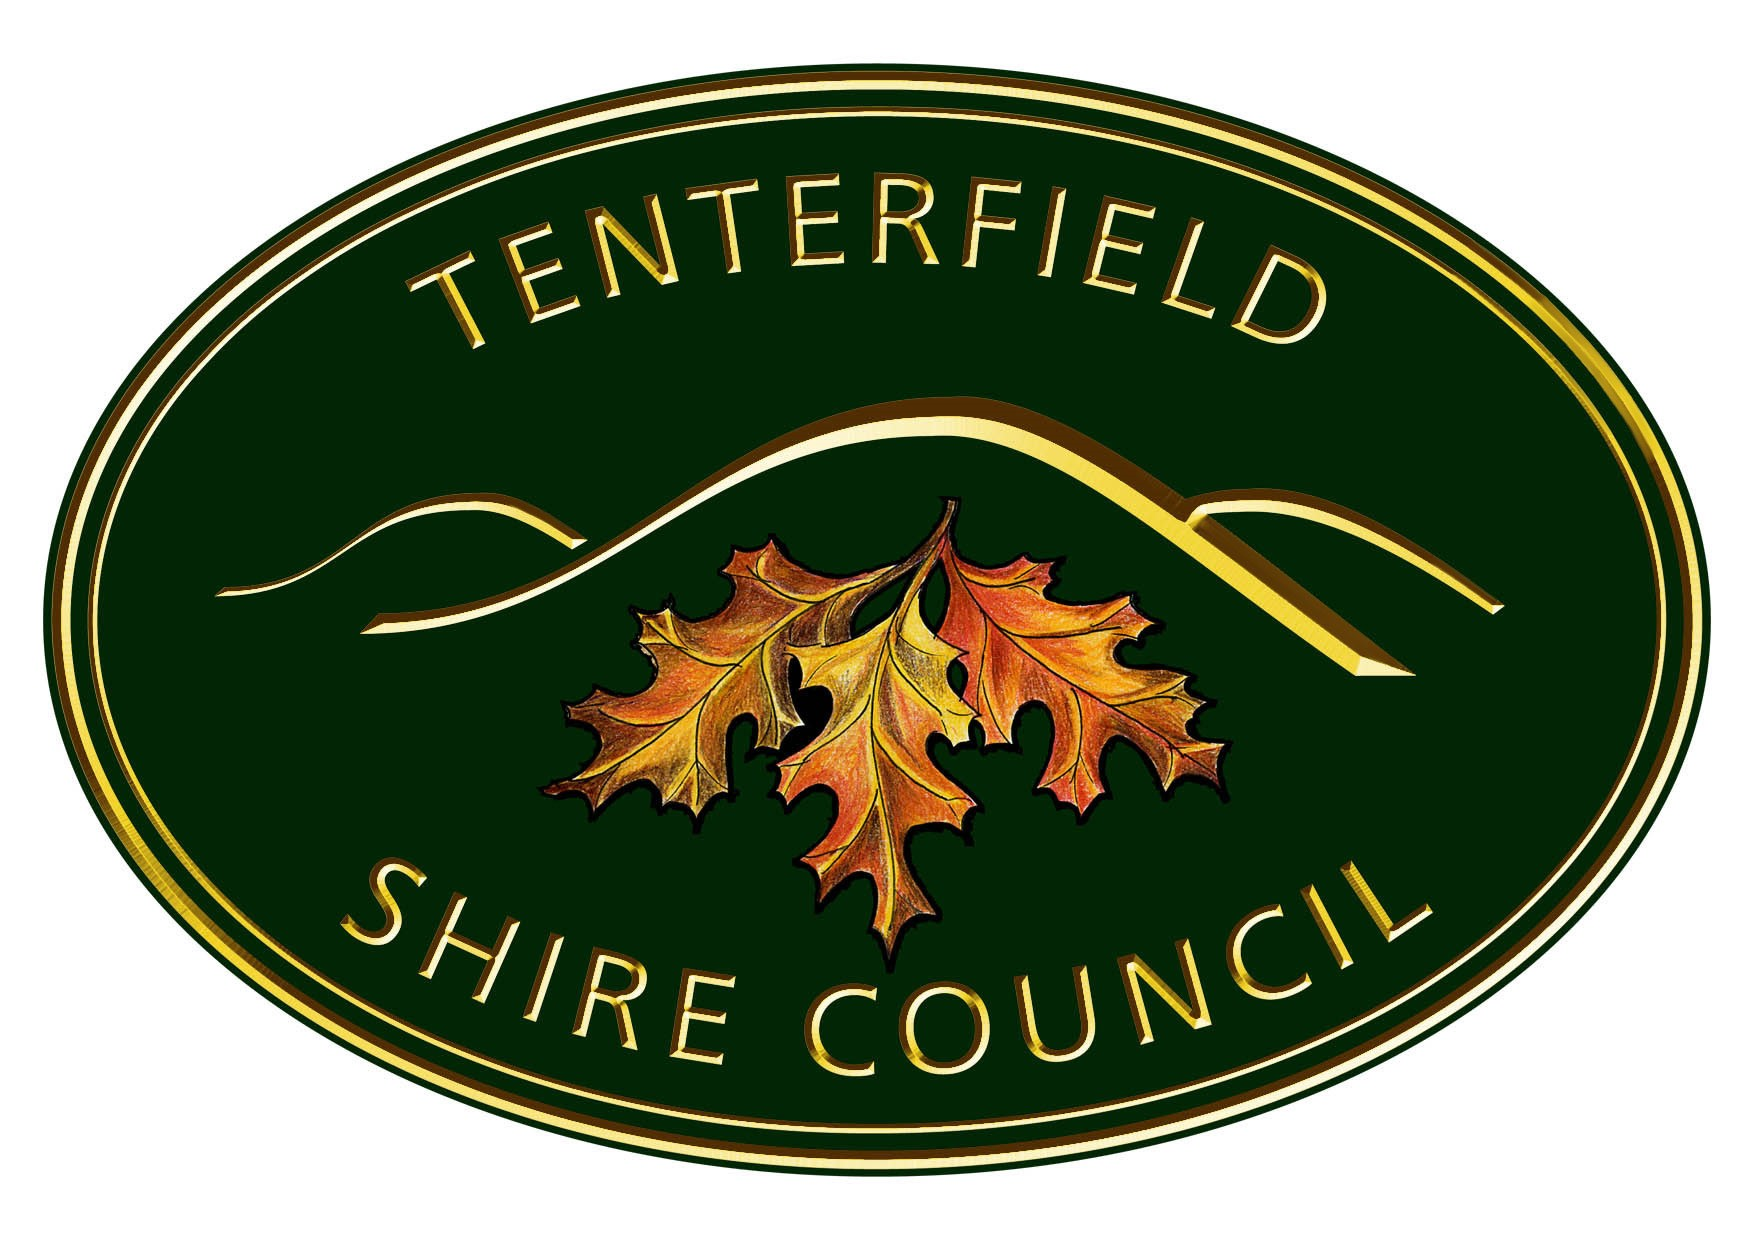 Tenterfield Public Library